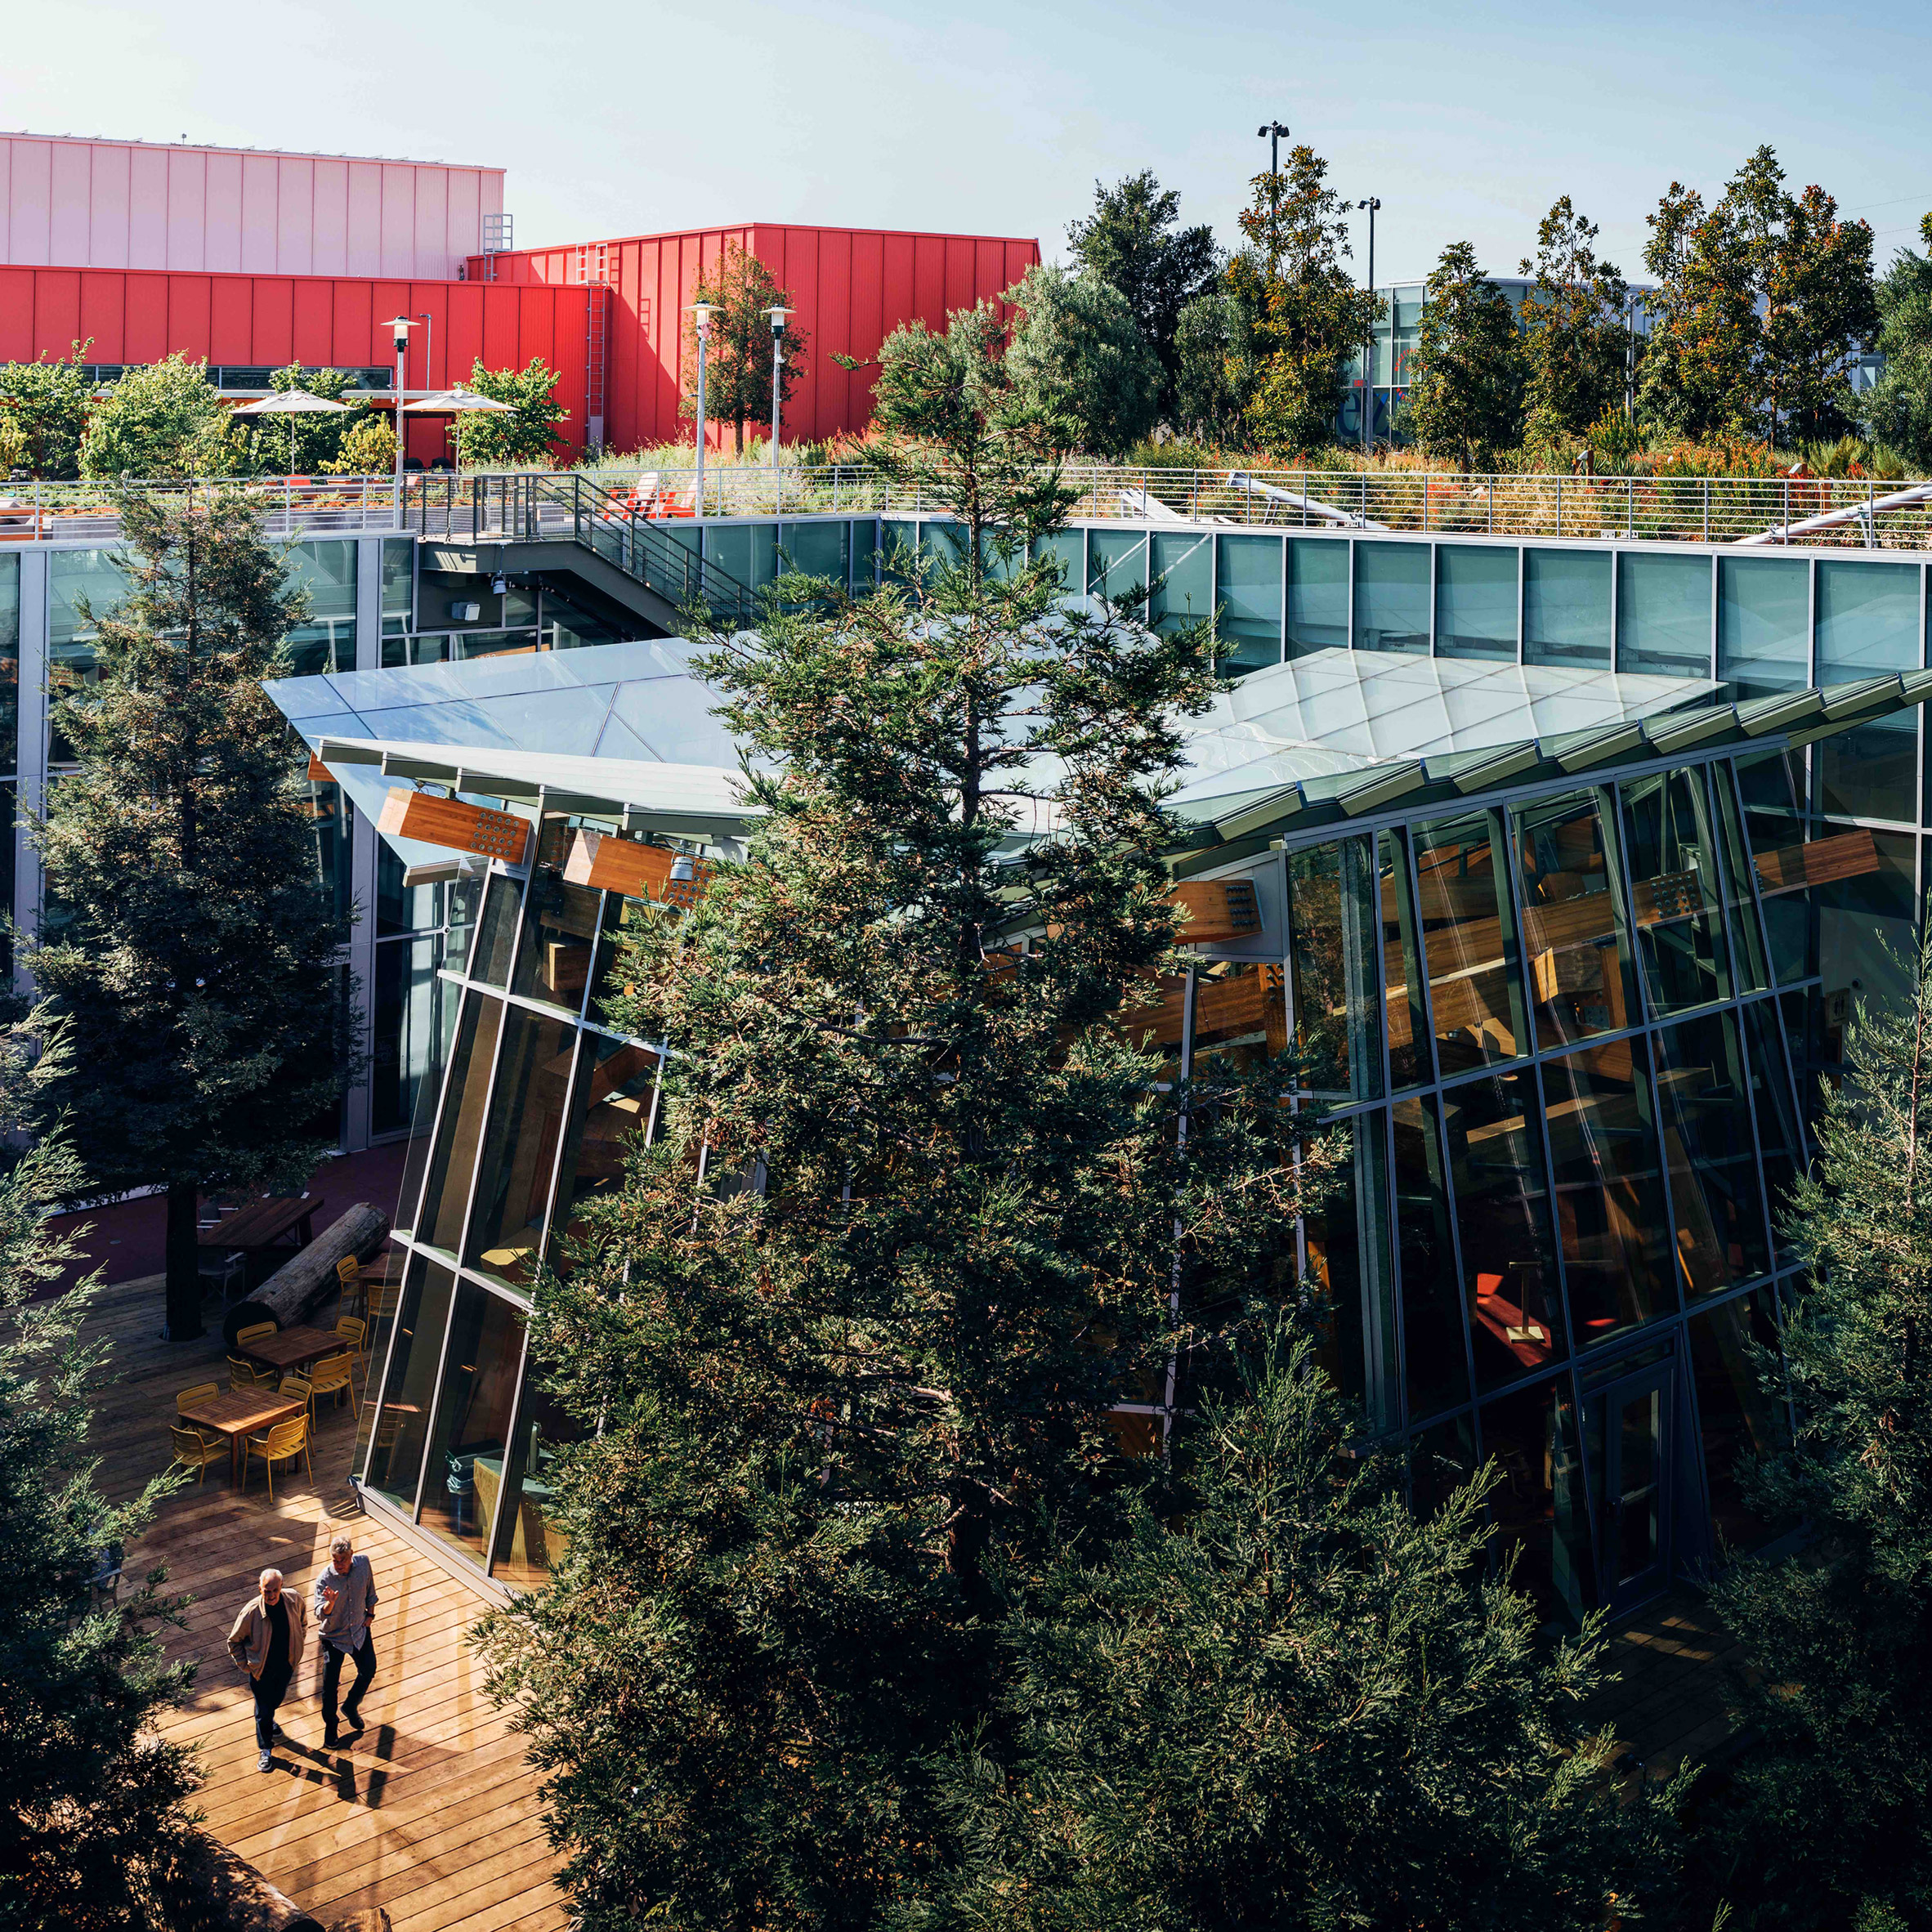 Facebook Reveals Expanded California Campus Designed By Inspiration Frank Gehry Will Design Offices For Facebook In New York